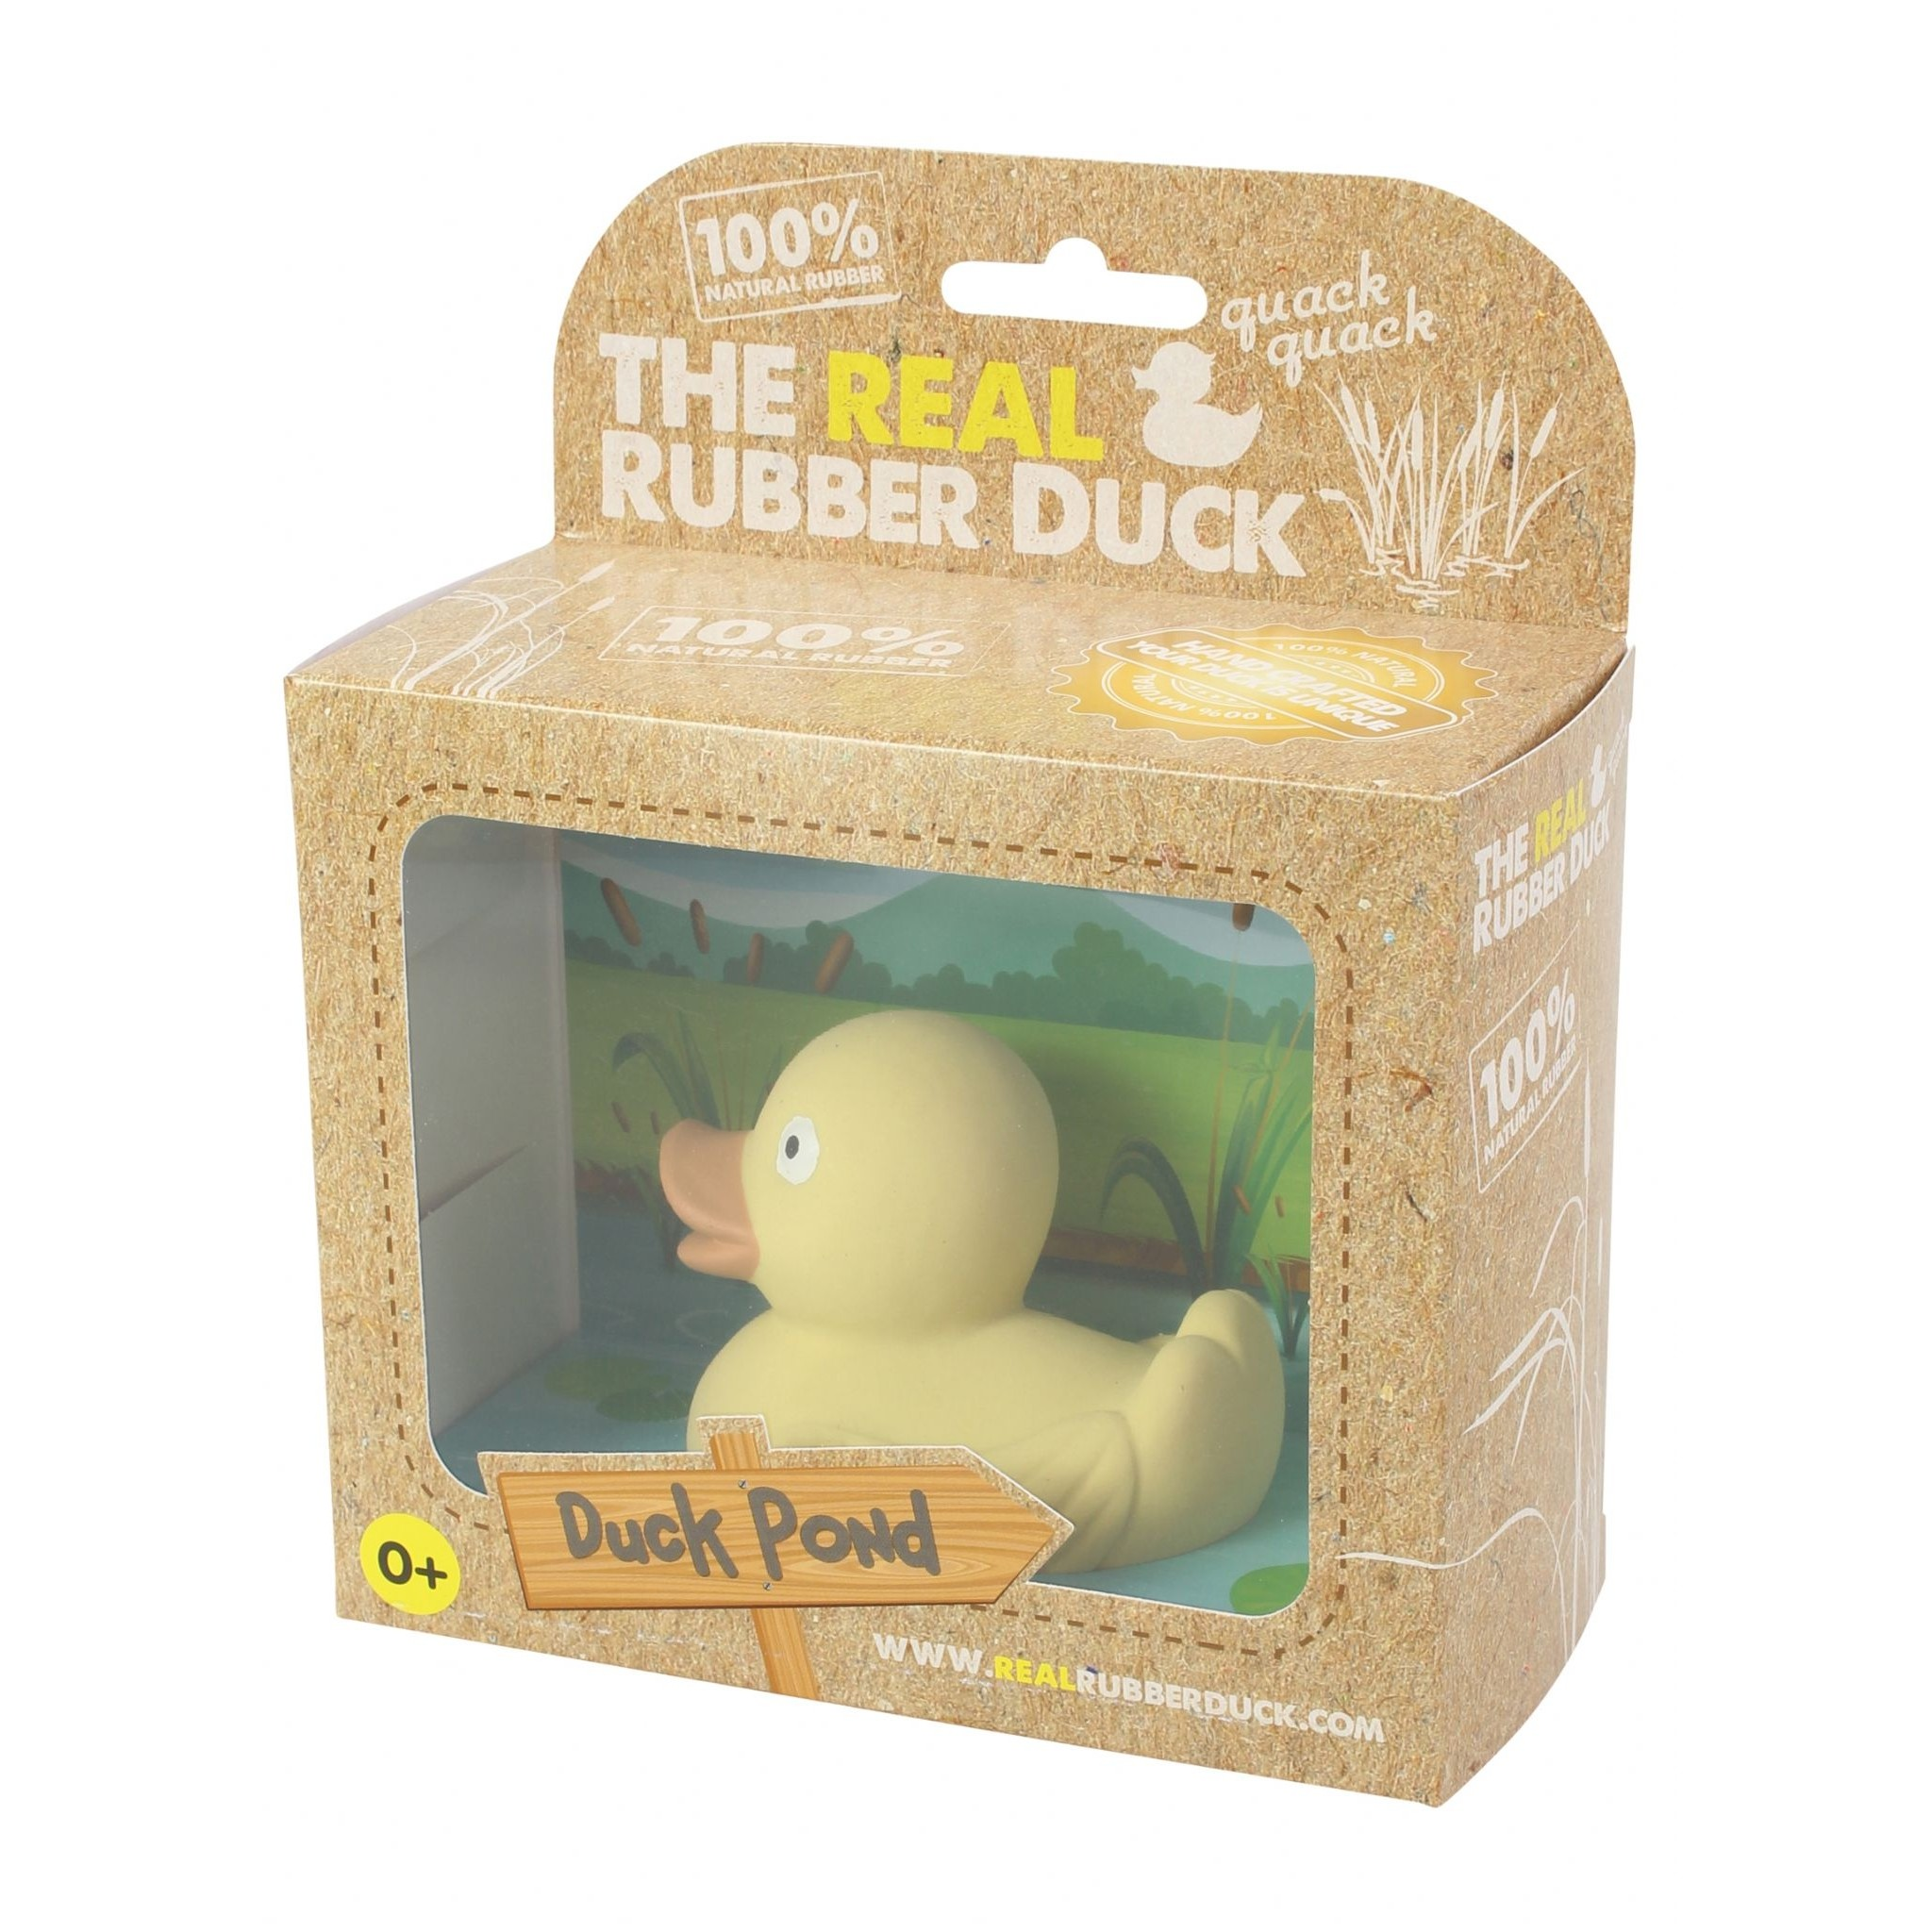 Sanitizing Bath Toys Naturally : The real rubber duck natural ducks